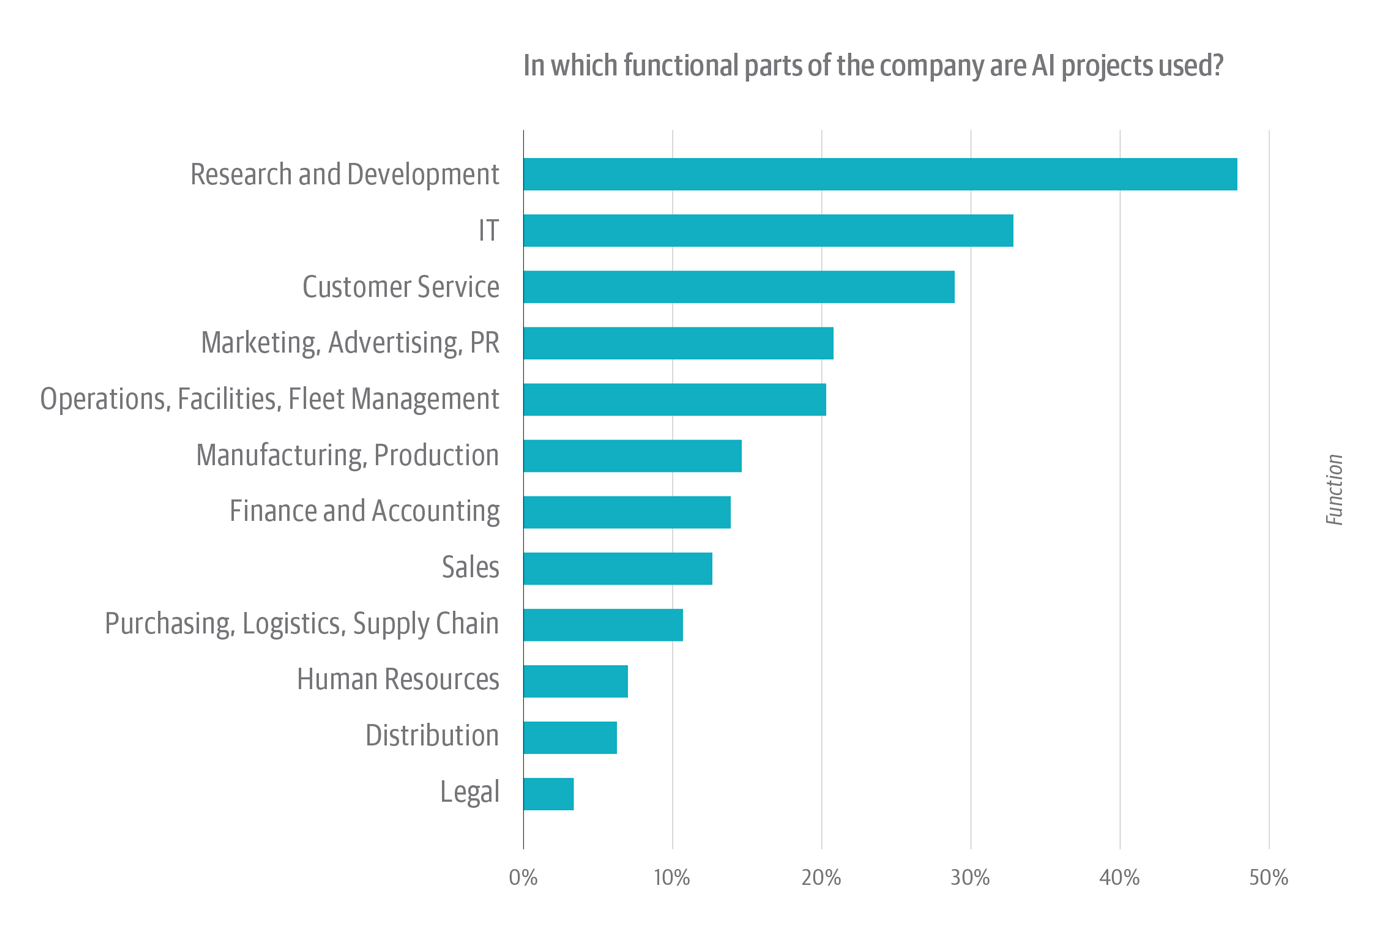 Where AI projects are being used within companies